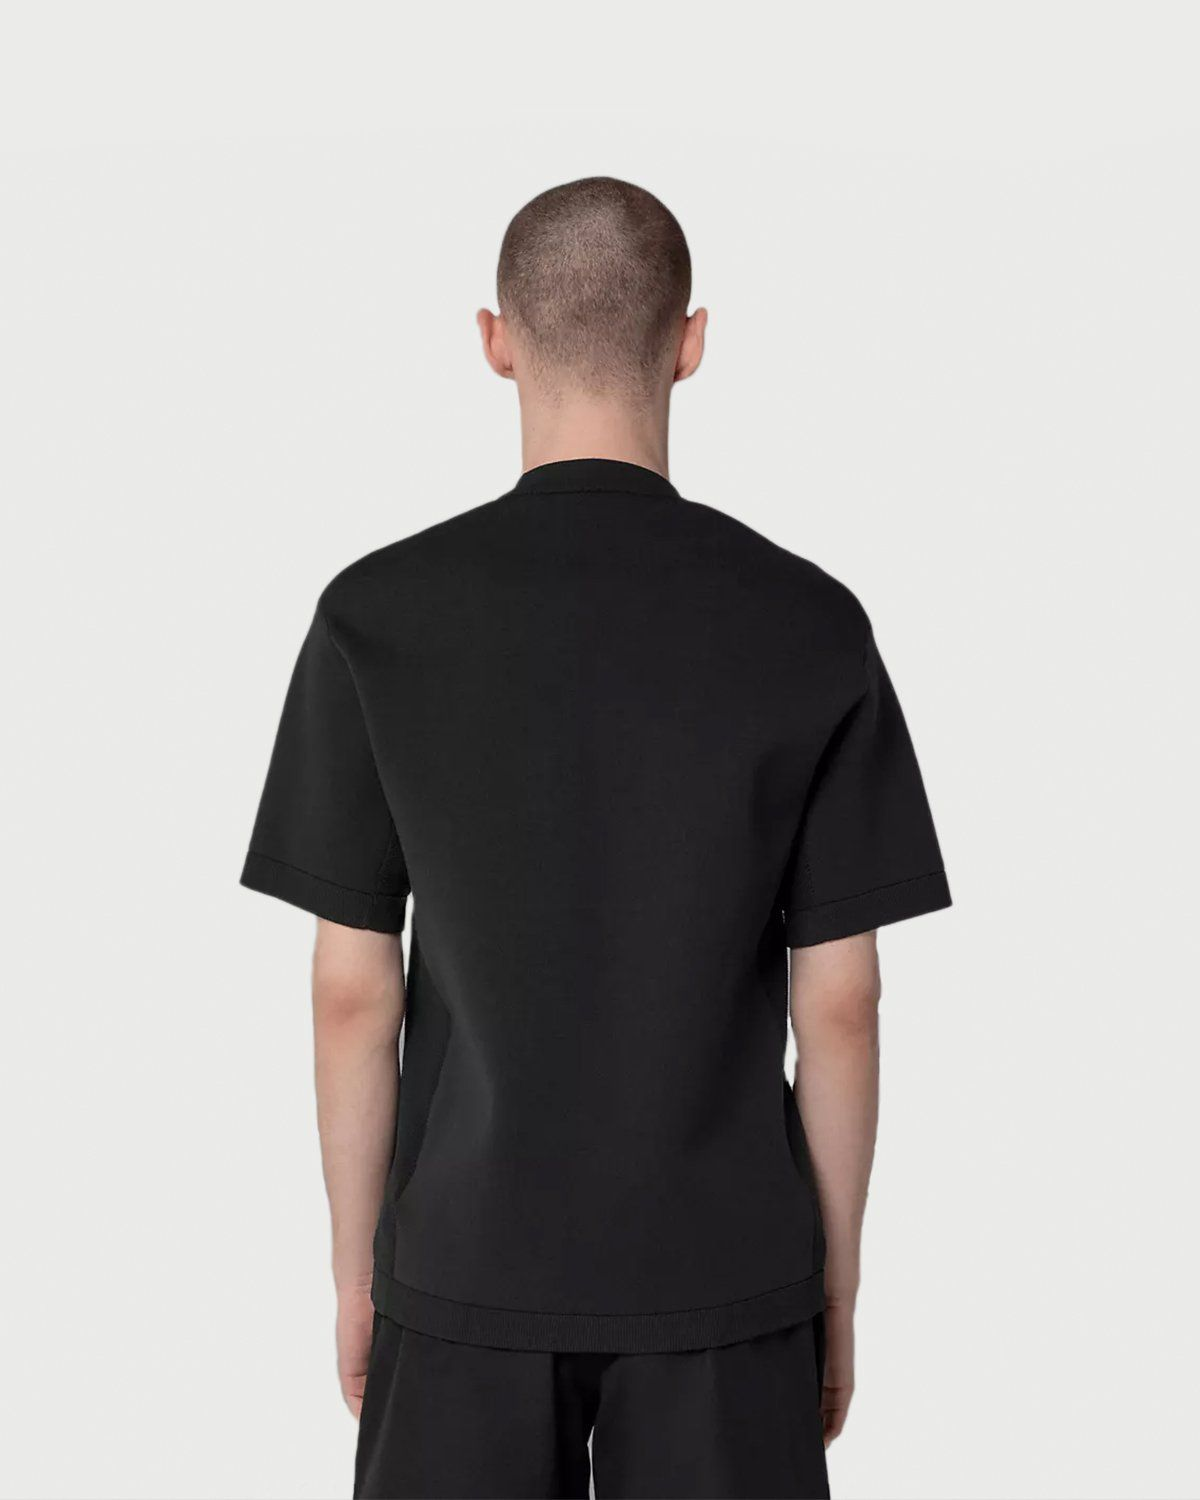 The North Face Black Series - Engineered Knit T-Shirt Black - Image 3